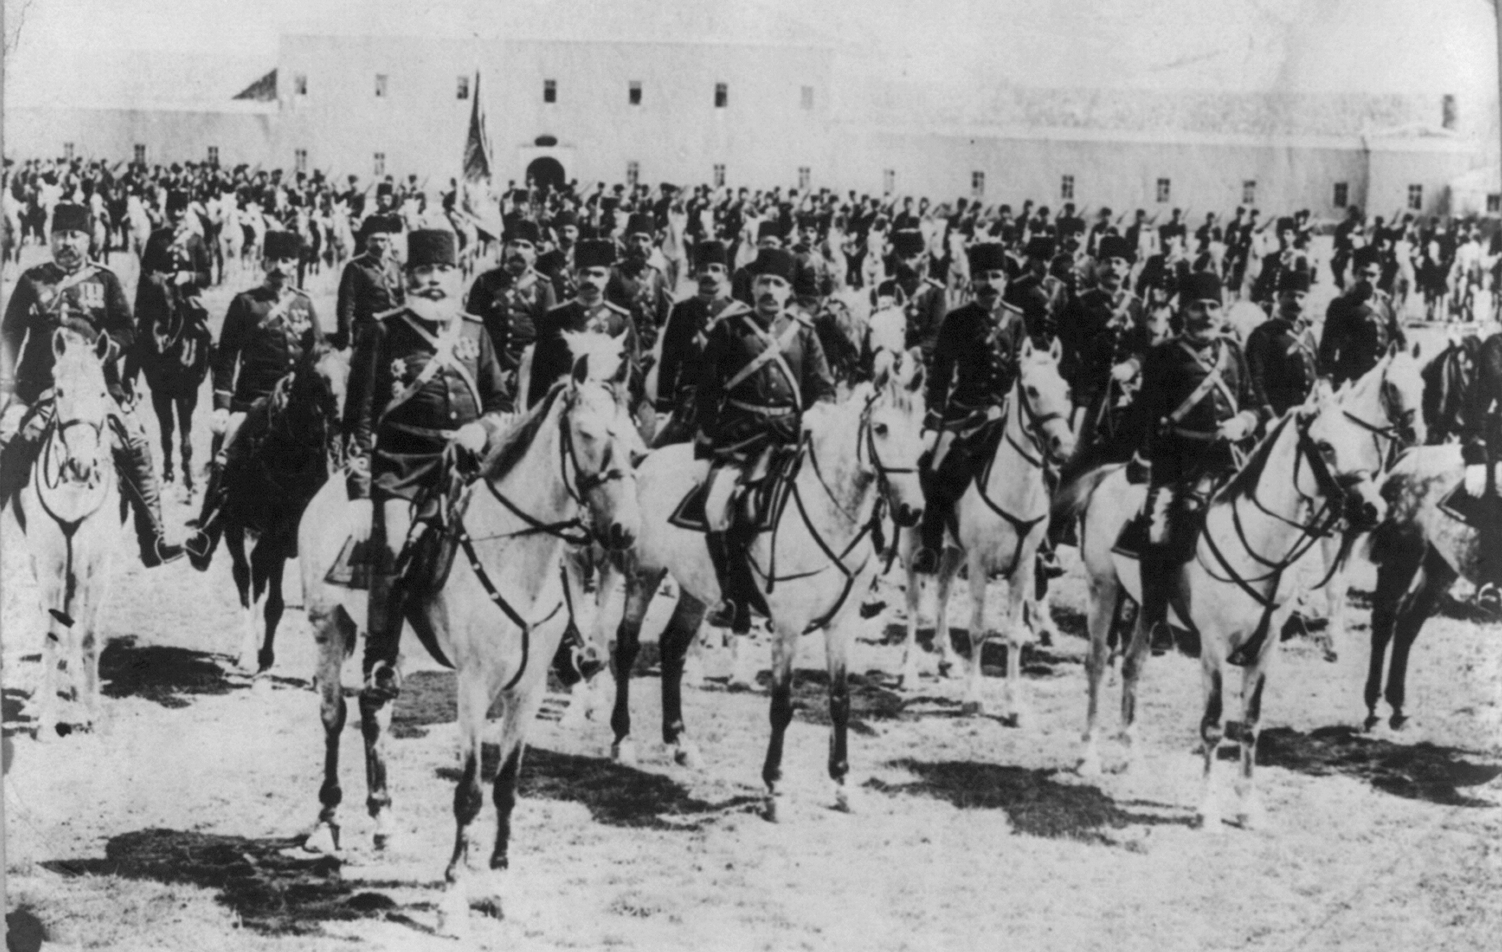 Ottoman cavalry, now in the war, date and place uncertain